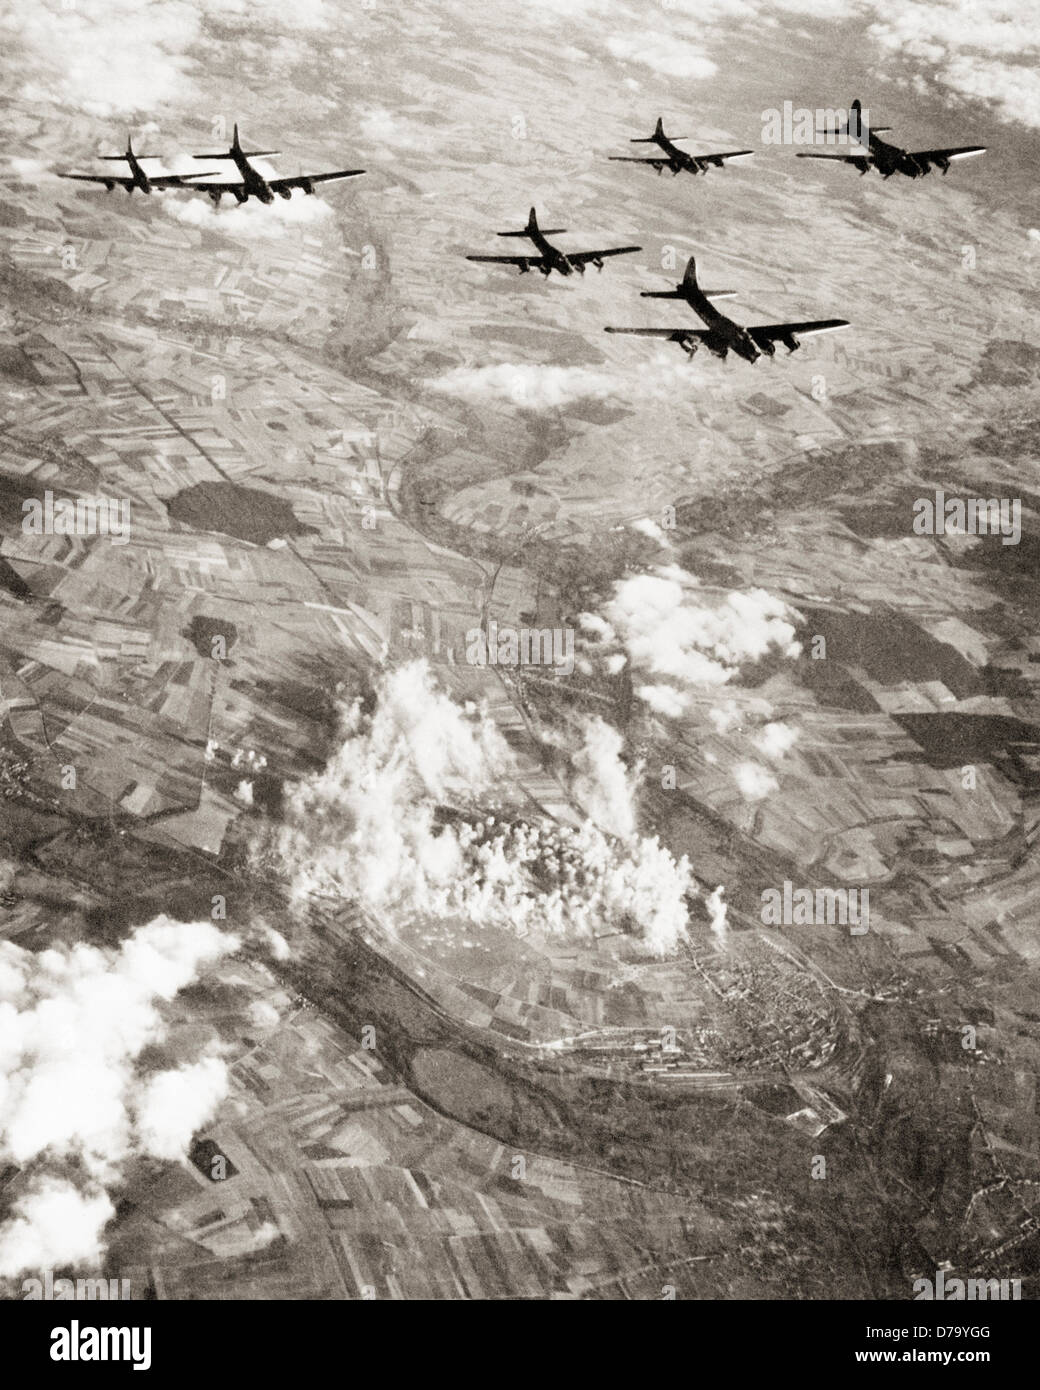 Carpet Bombing Stock Photos   Carpet Bombing Stock Images   Alamy US B 17 Flying Fortresses Carpet Bombing   Stock Image